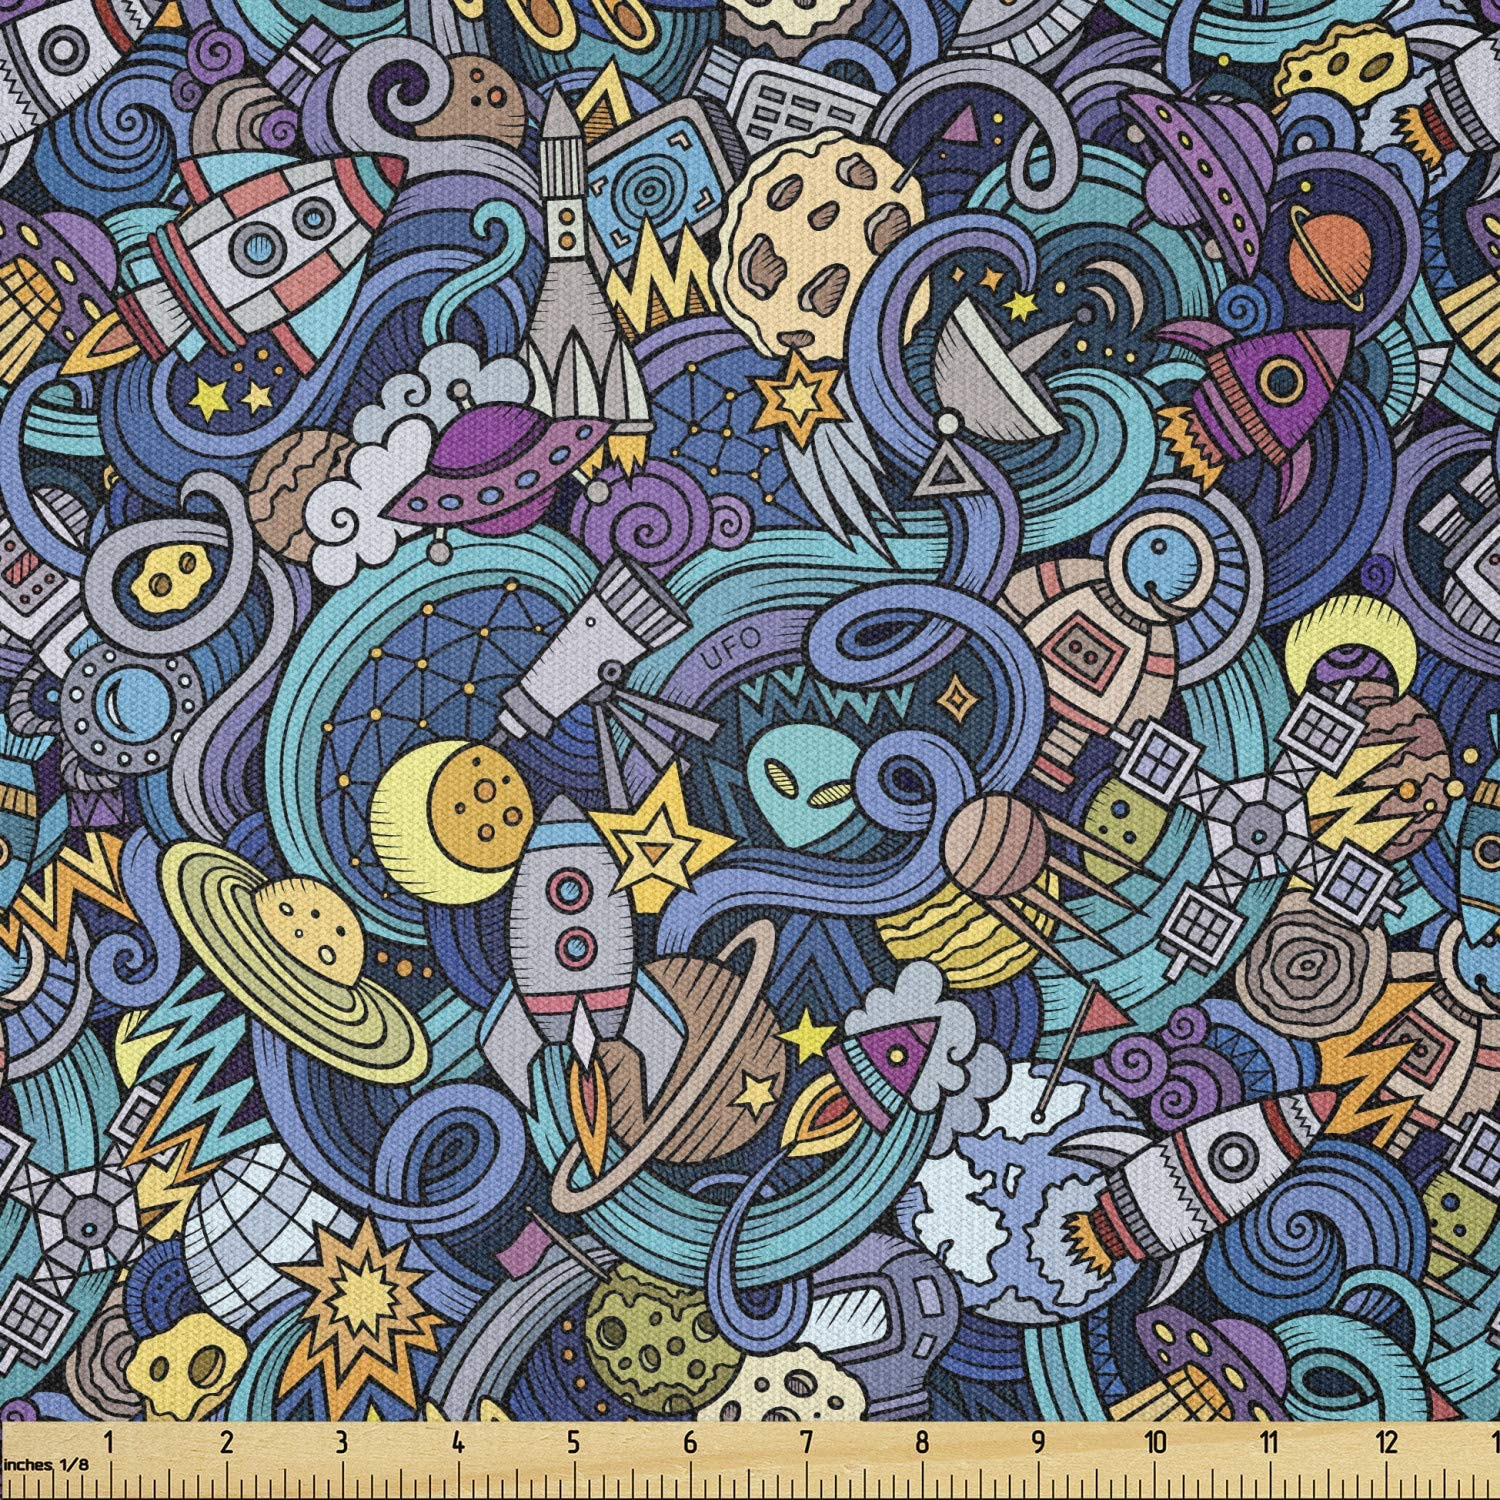 Lunarable Science Fabric by The Yard, Doodle Composition of Outer Space Themed Cartoon UFO and Rockets Alien Planets, Stretch Knit Fabric for Clothing Sewing and Arts Crafts, 2 Yards, Teal Purple